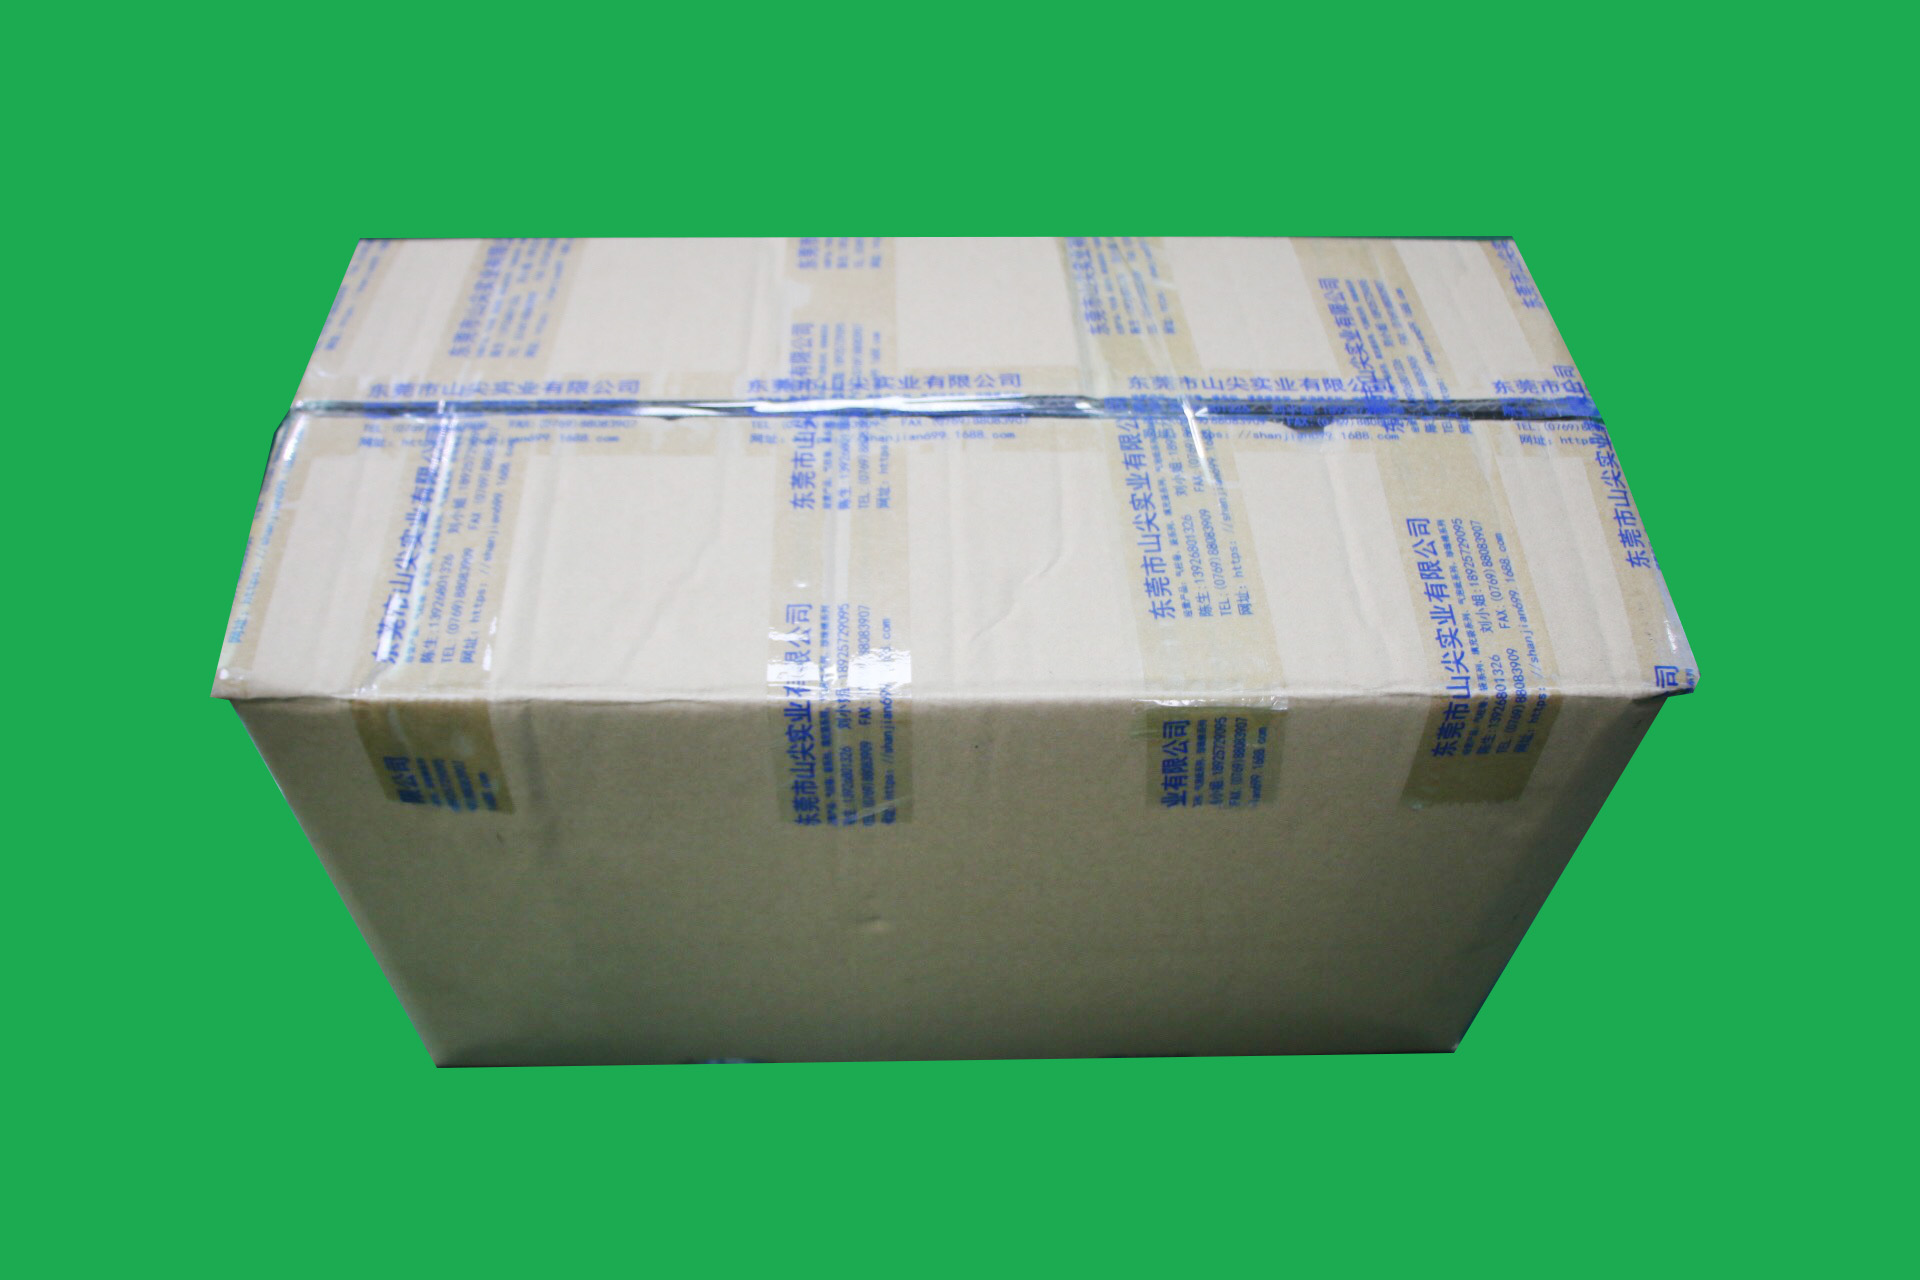 Sunshinepack OEM air filled plastic bags packaging Supply for delivery-6